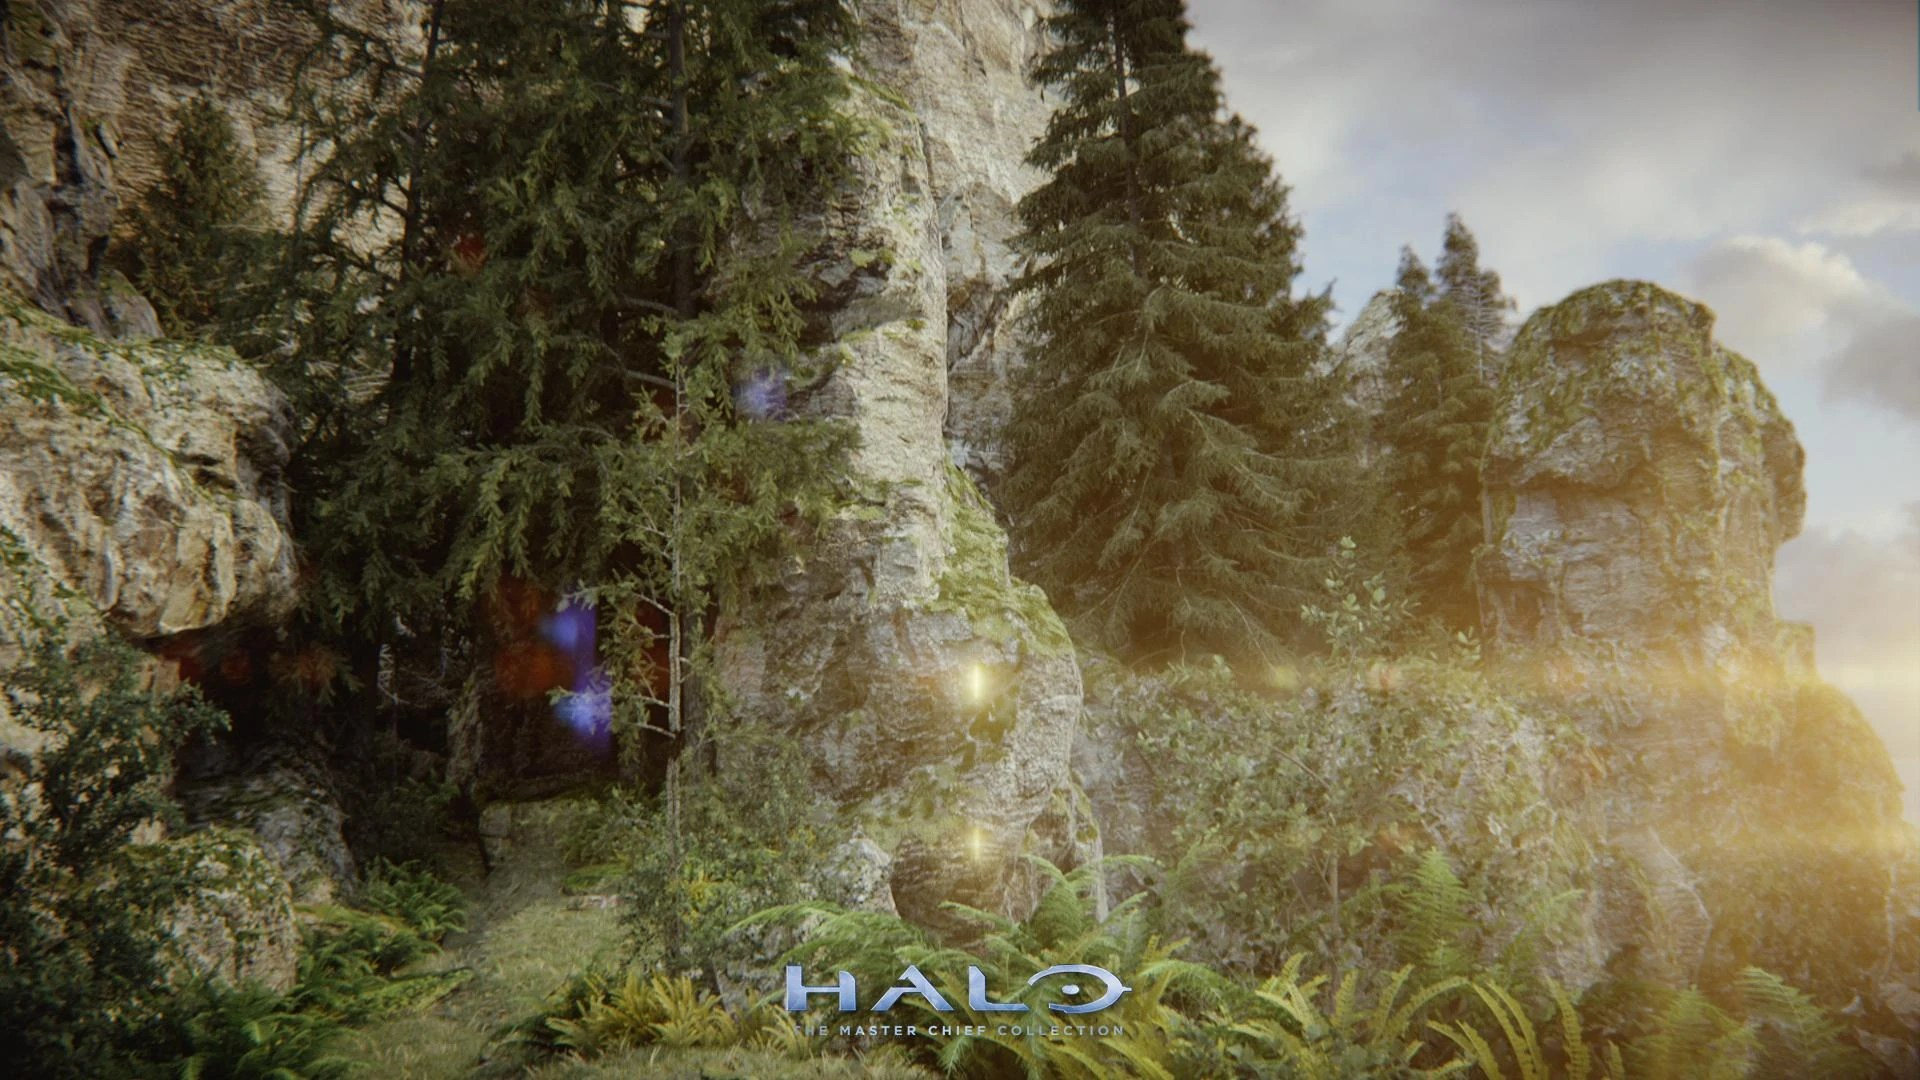 King Of The Fall Wallpaper Uprising Halo Nation Fandom Powered By Wikia